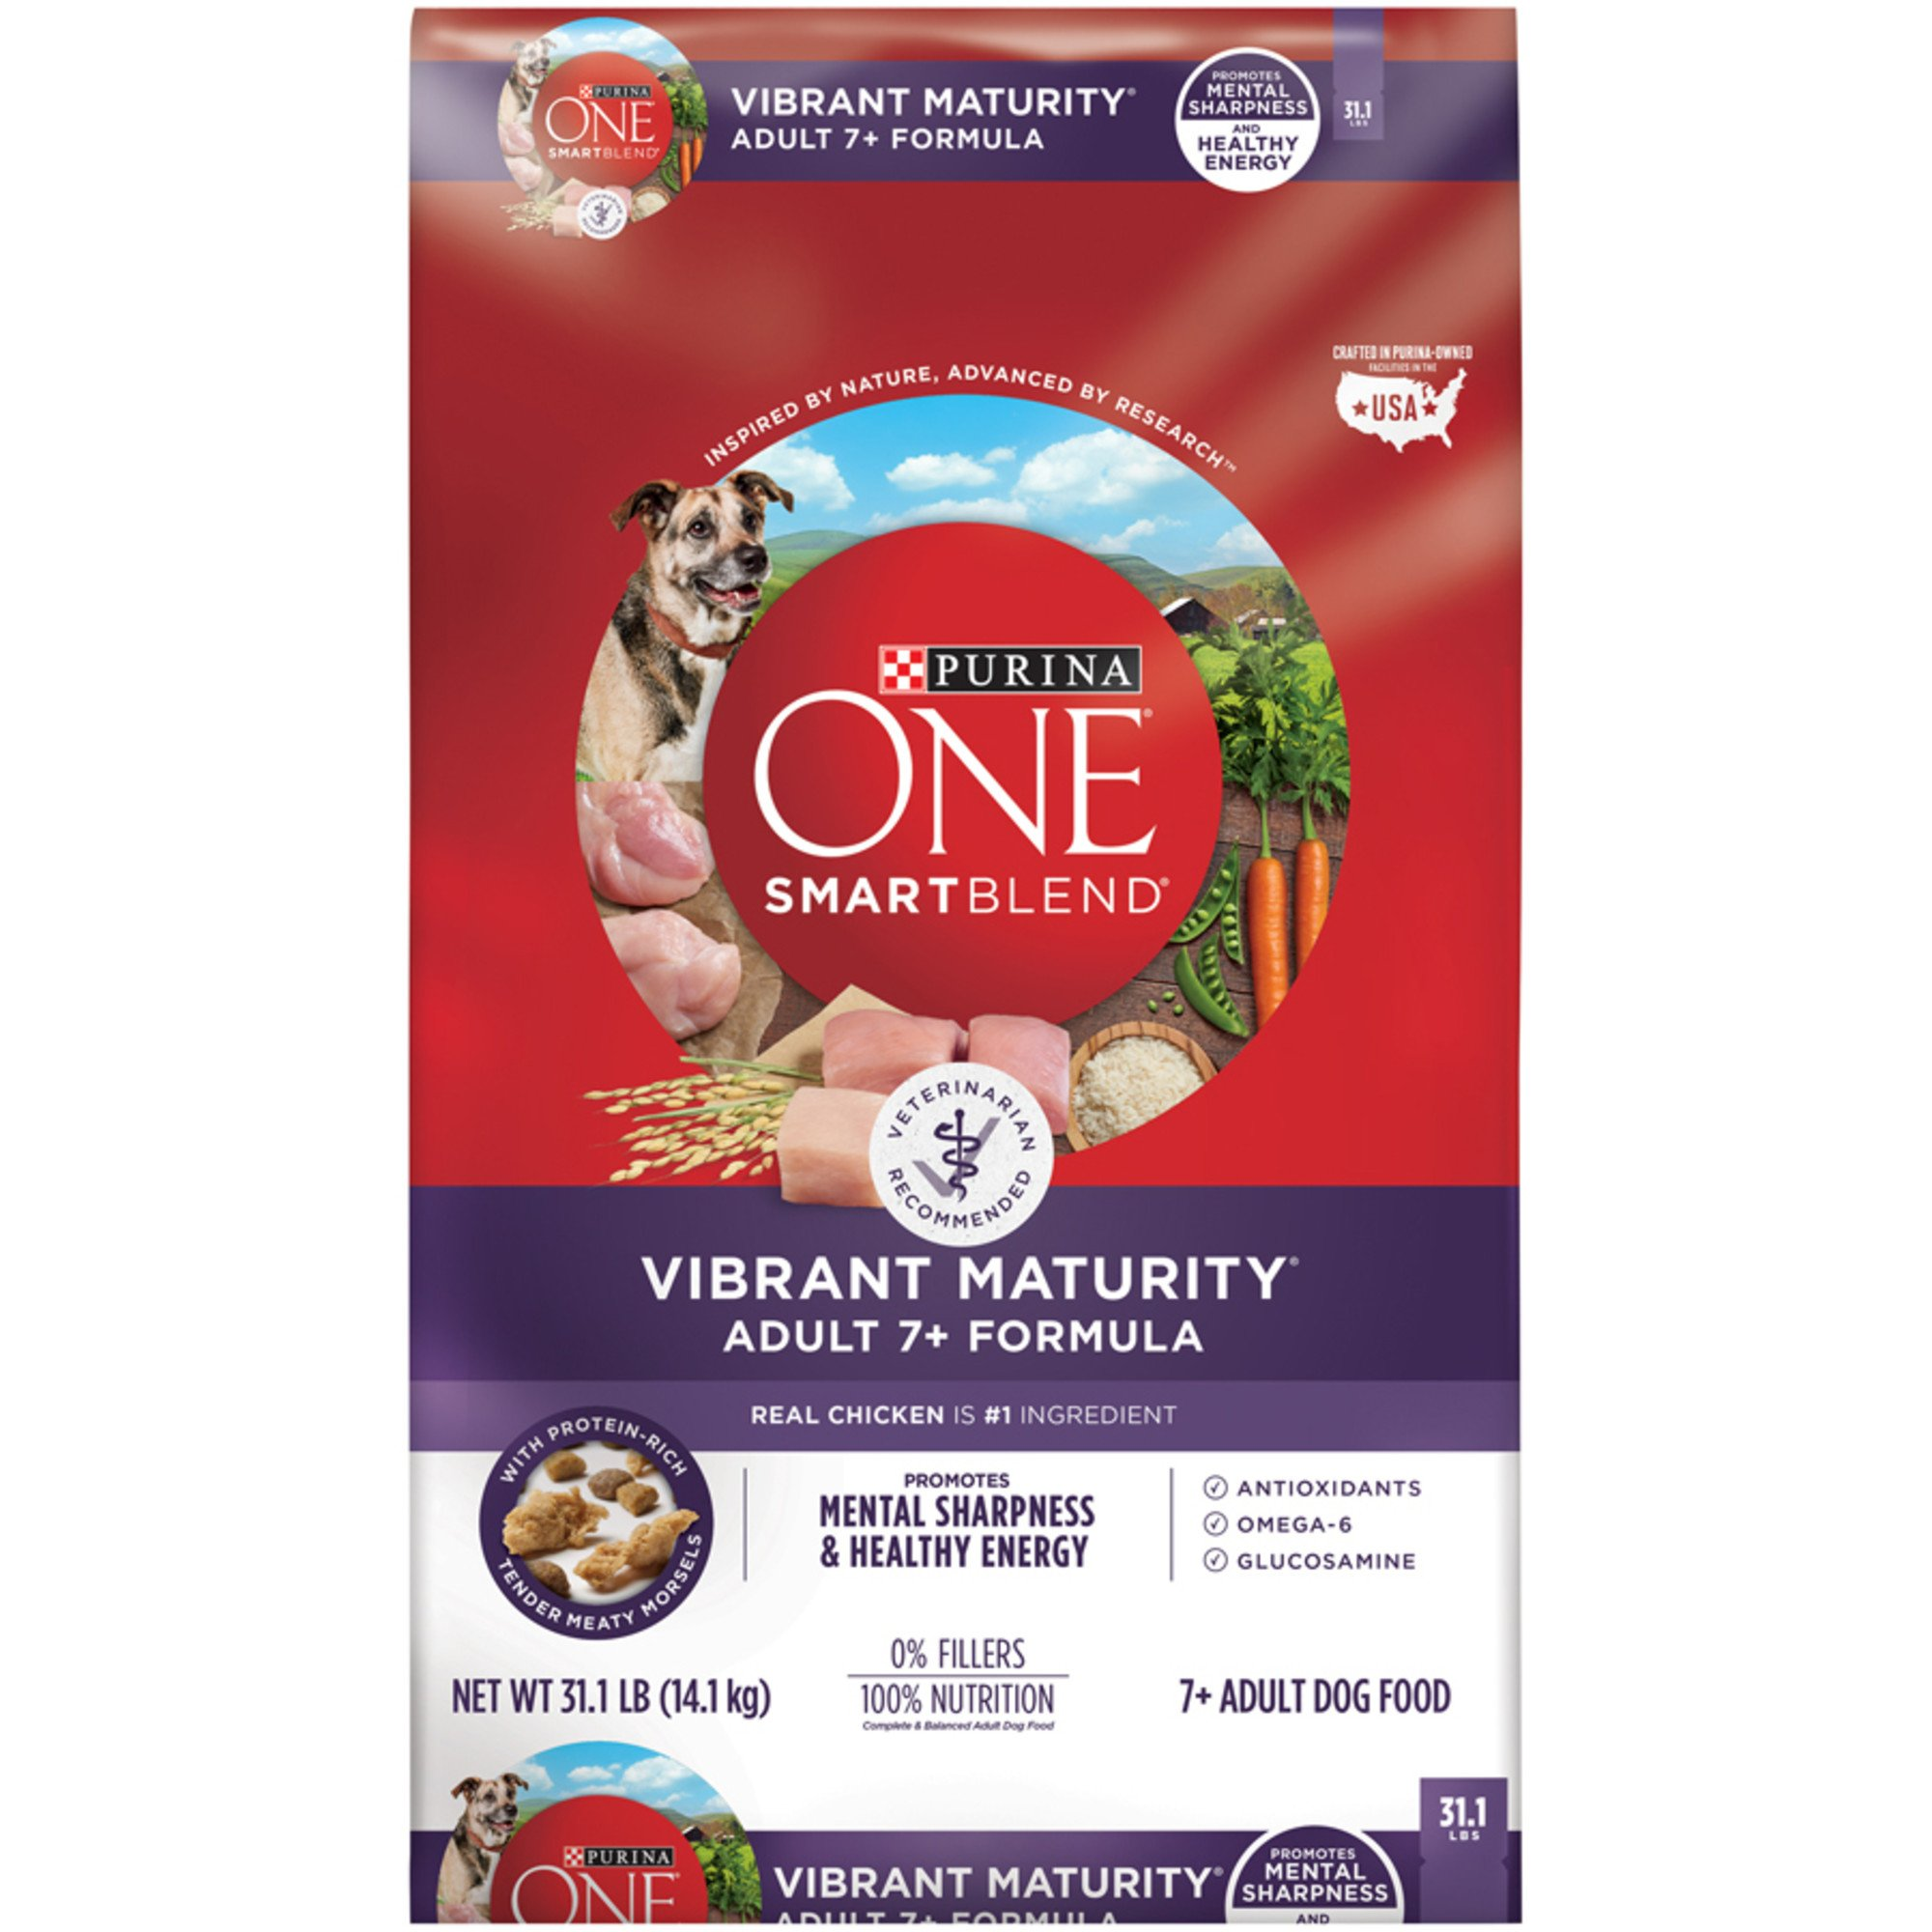 Purina One Vibrant Maturity Dog Food